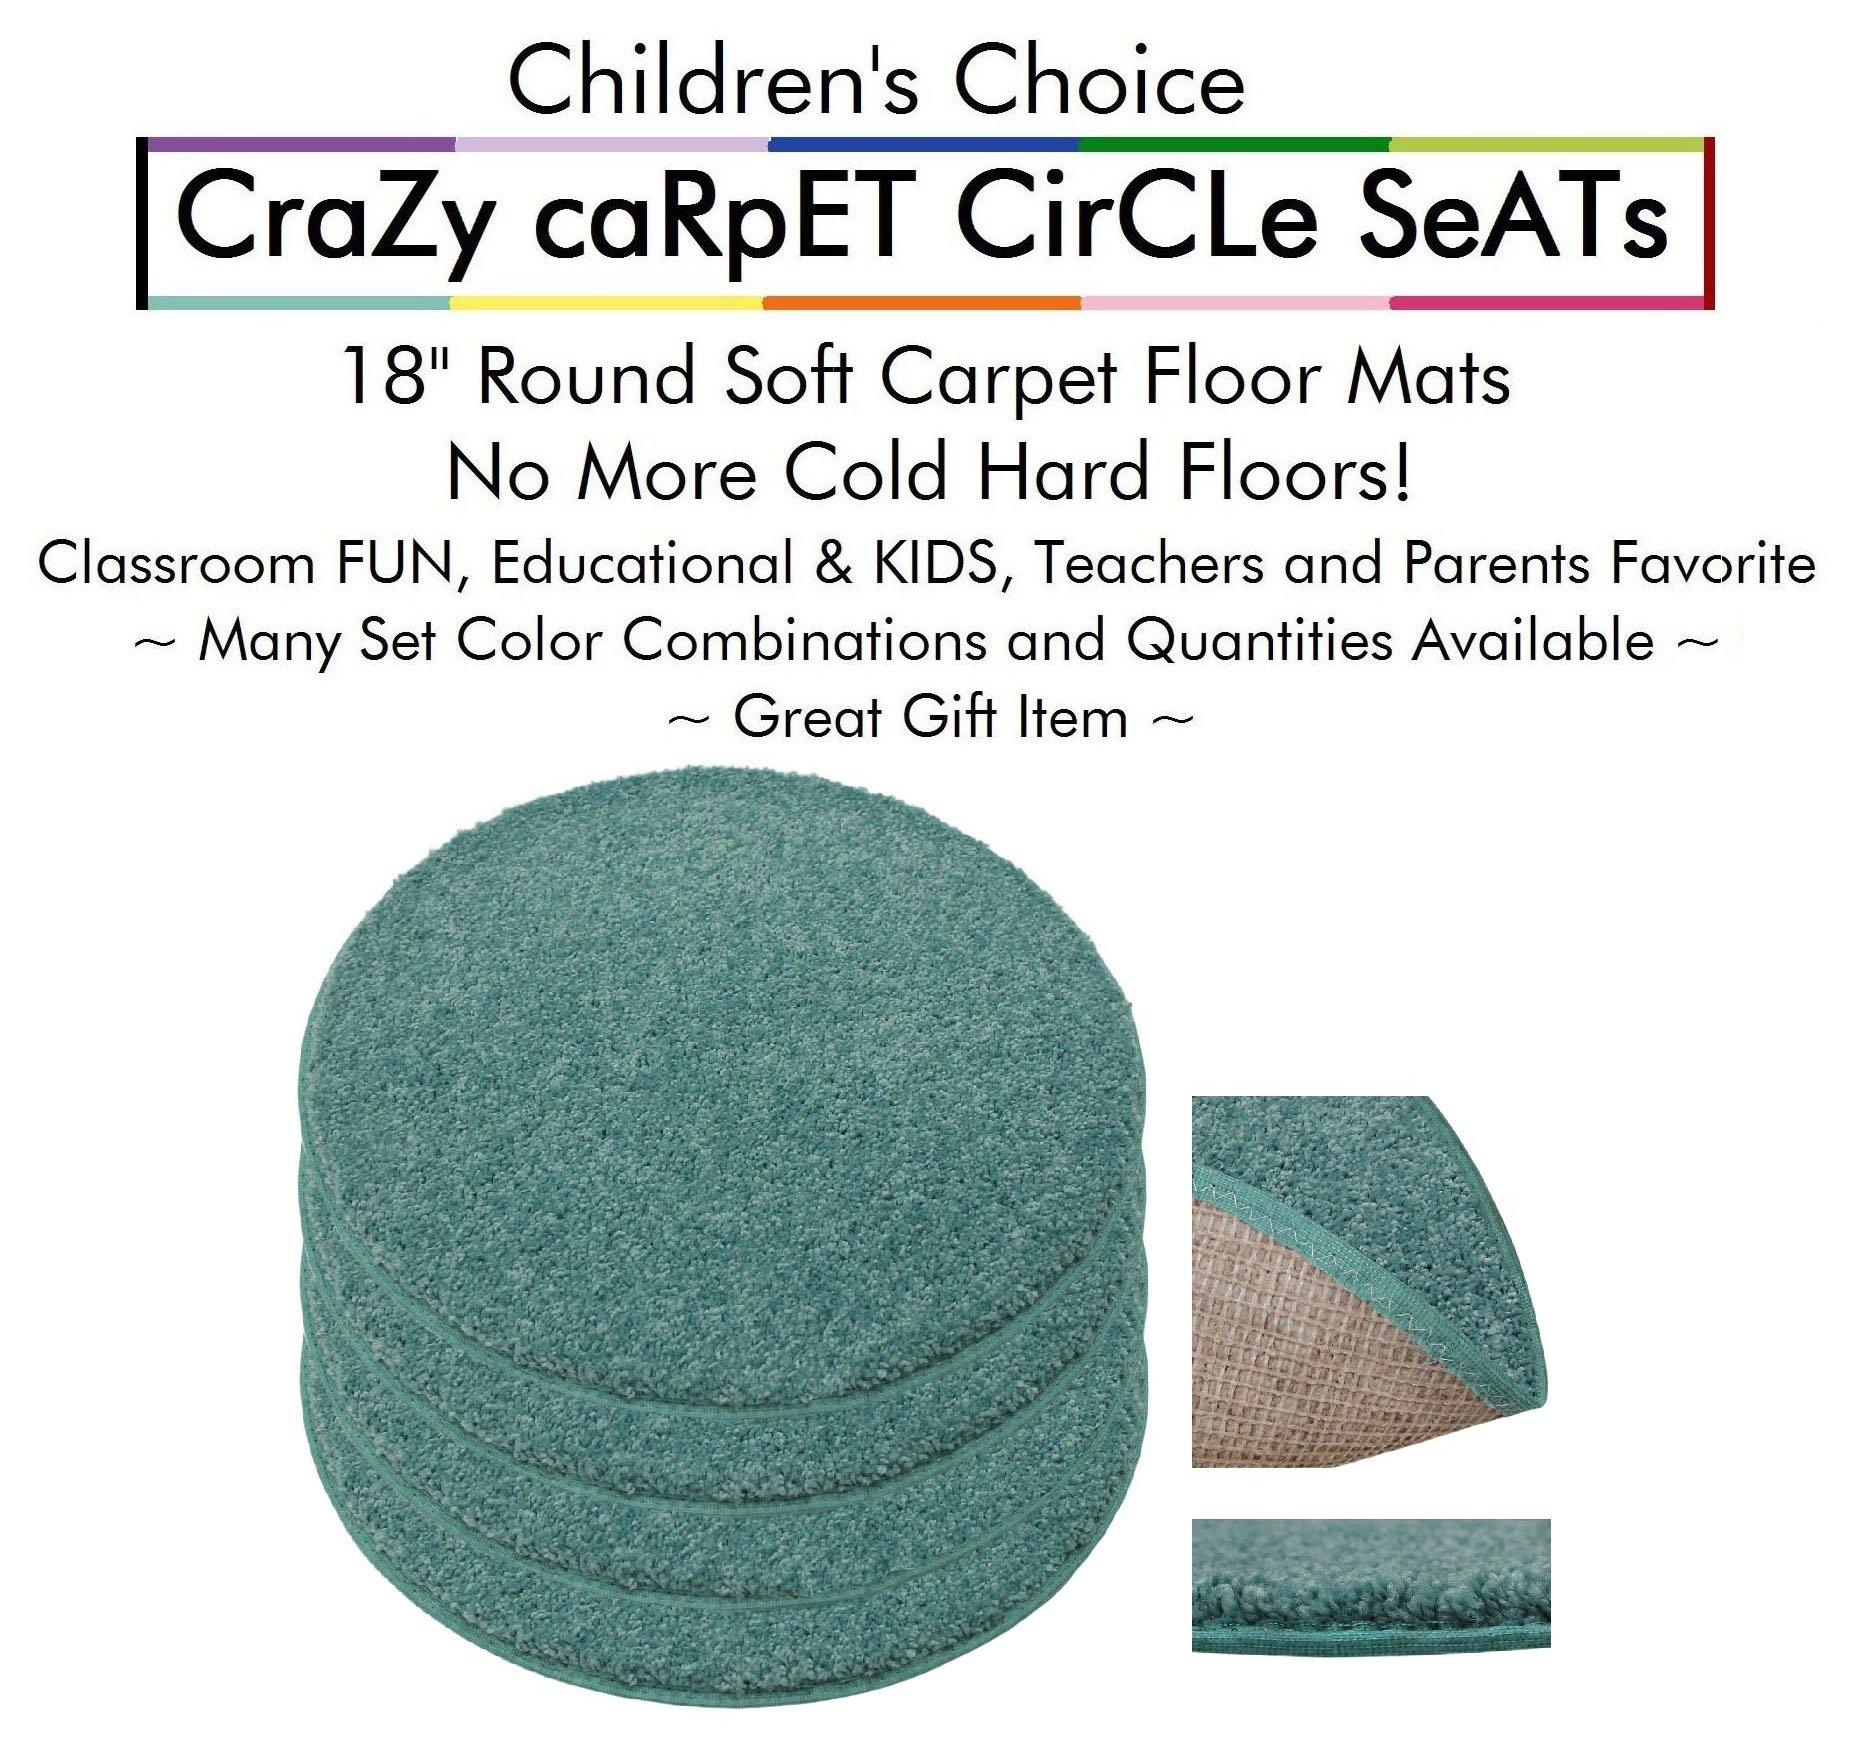 """Set 4 - Surfer Dude Kids CraZy CarPet CirCle SeaTs 18"""" Round Soft Warm Floor Mat - Cushions 